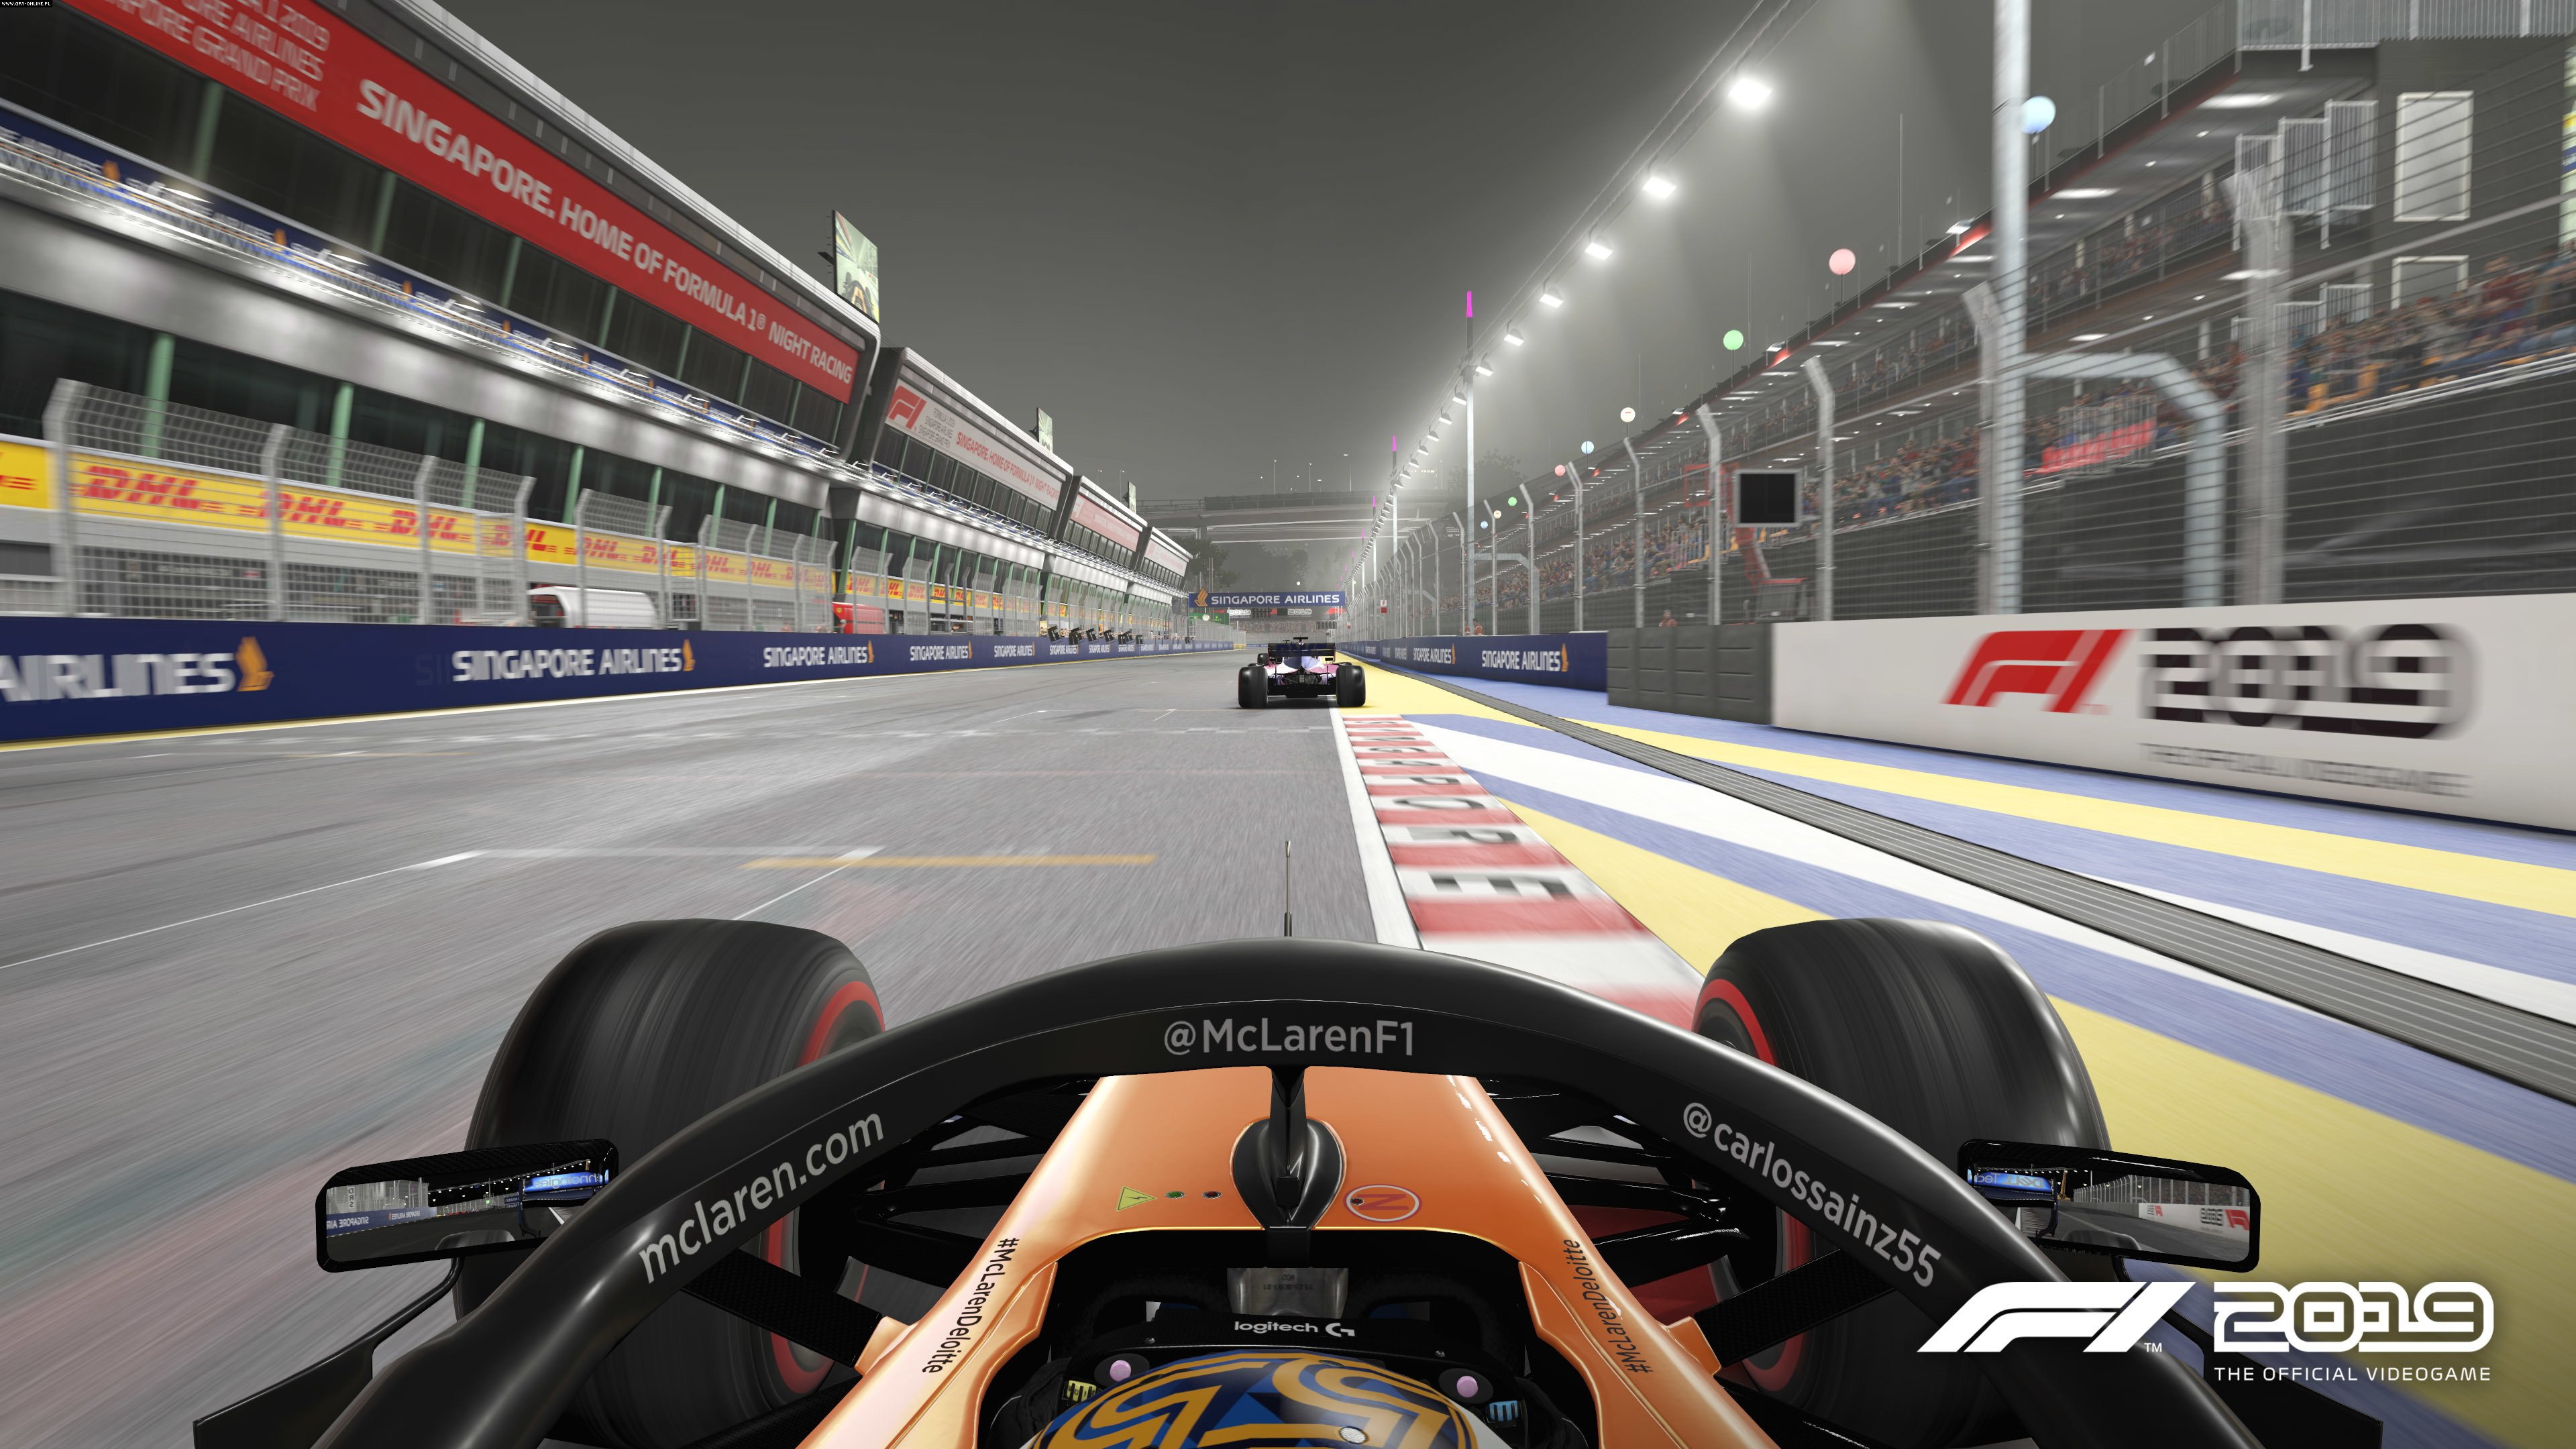 F1 2019 PC, PS4, XONE Gry Screen 36/87, Codemasters Software